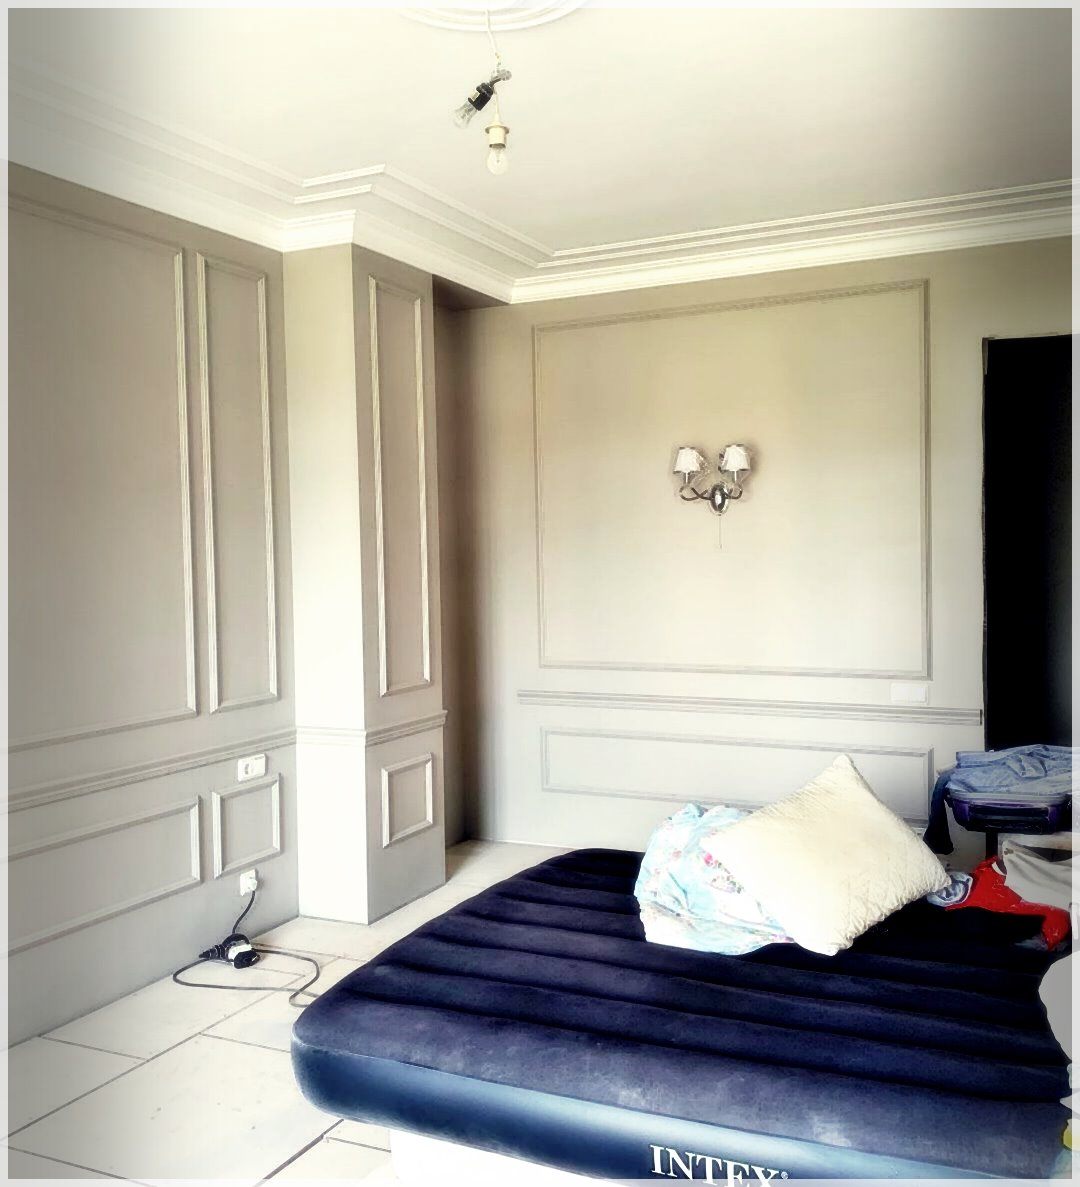 LuxuryHome-26699896682